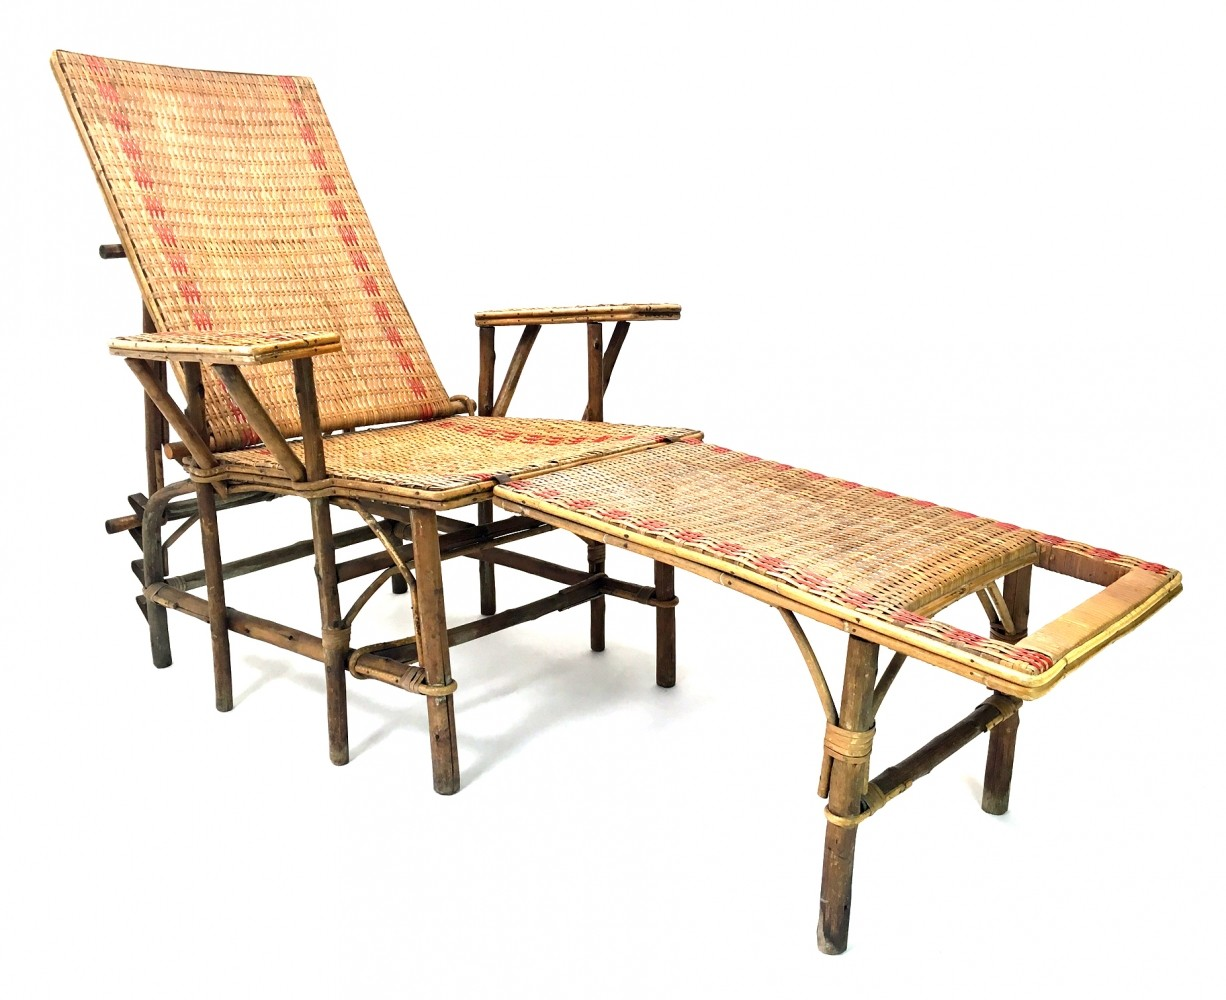 French wicker bamboo chaise longue with footrest 1920s for Cane chaise longue